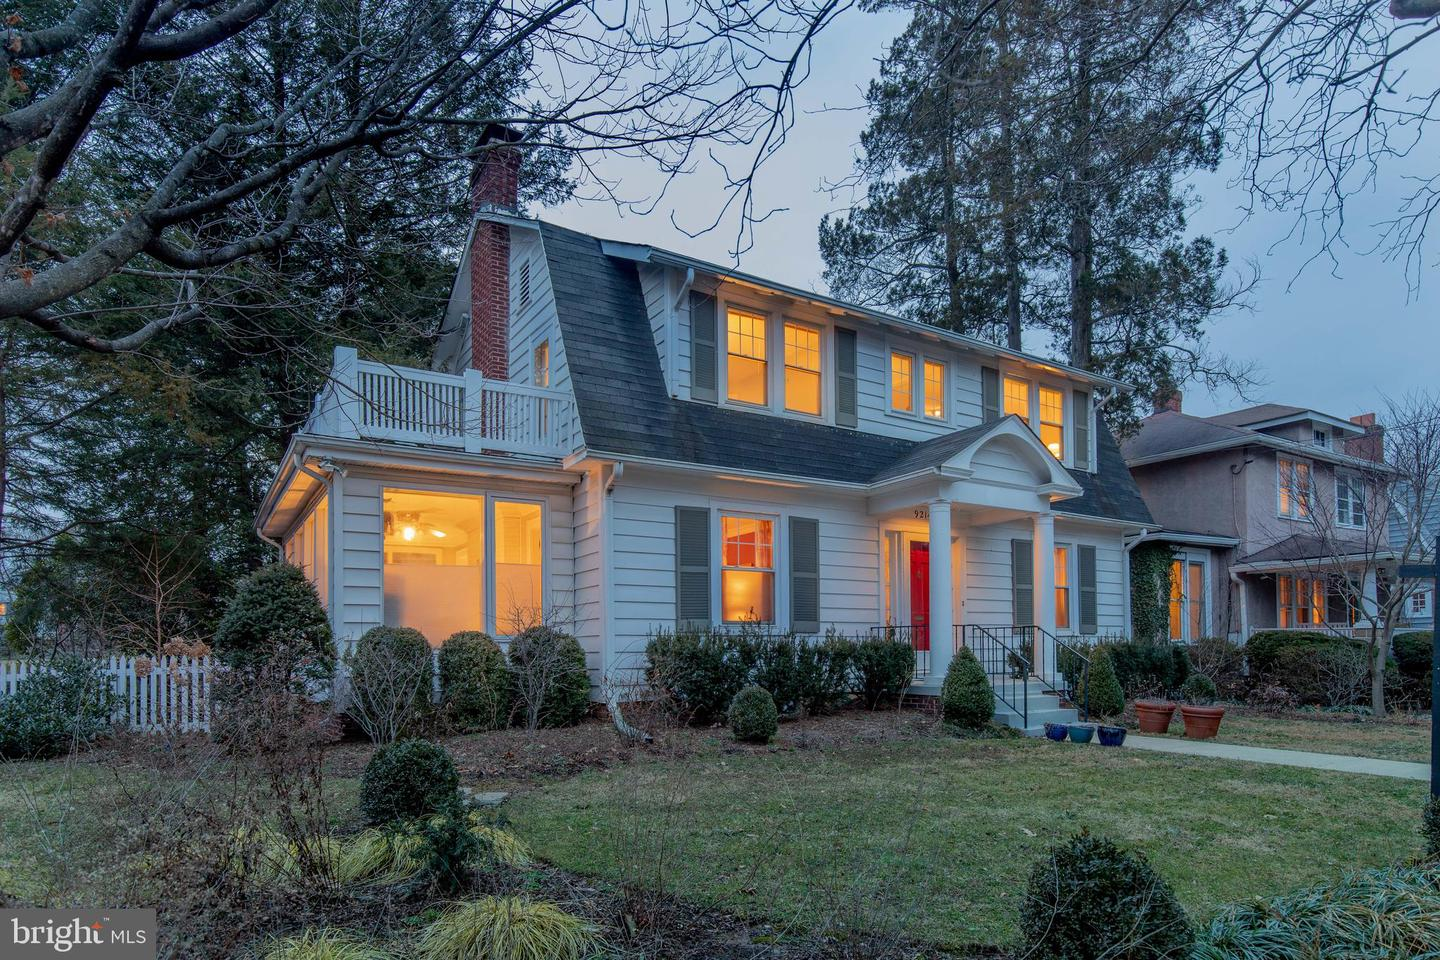 9214 COLUMBIA BOULEVARD, SILVER SPRING, Maryland